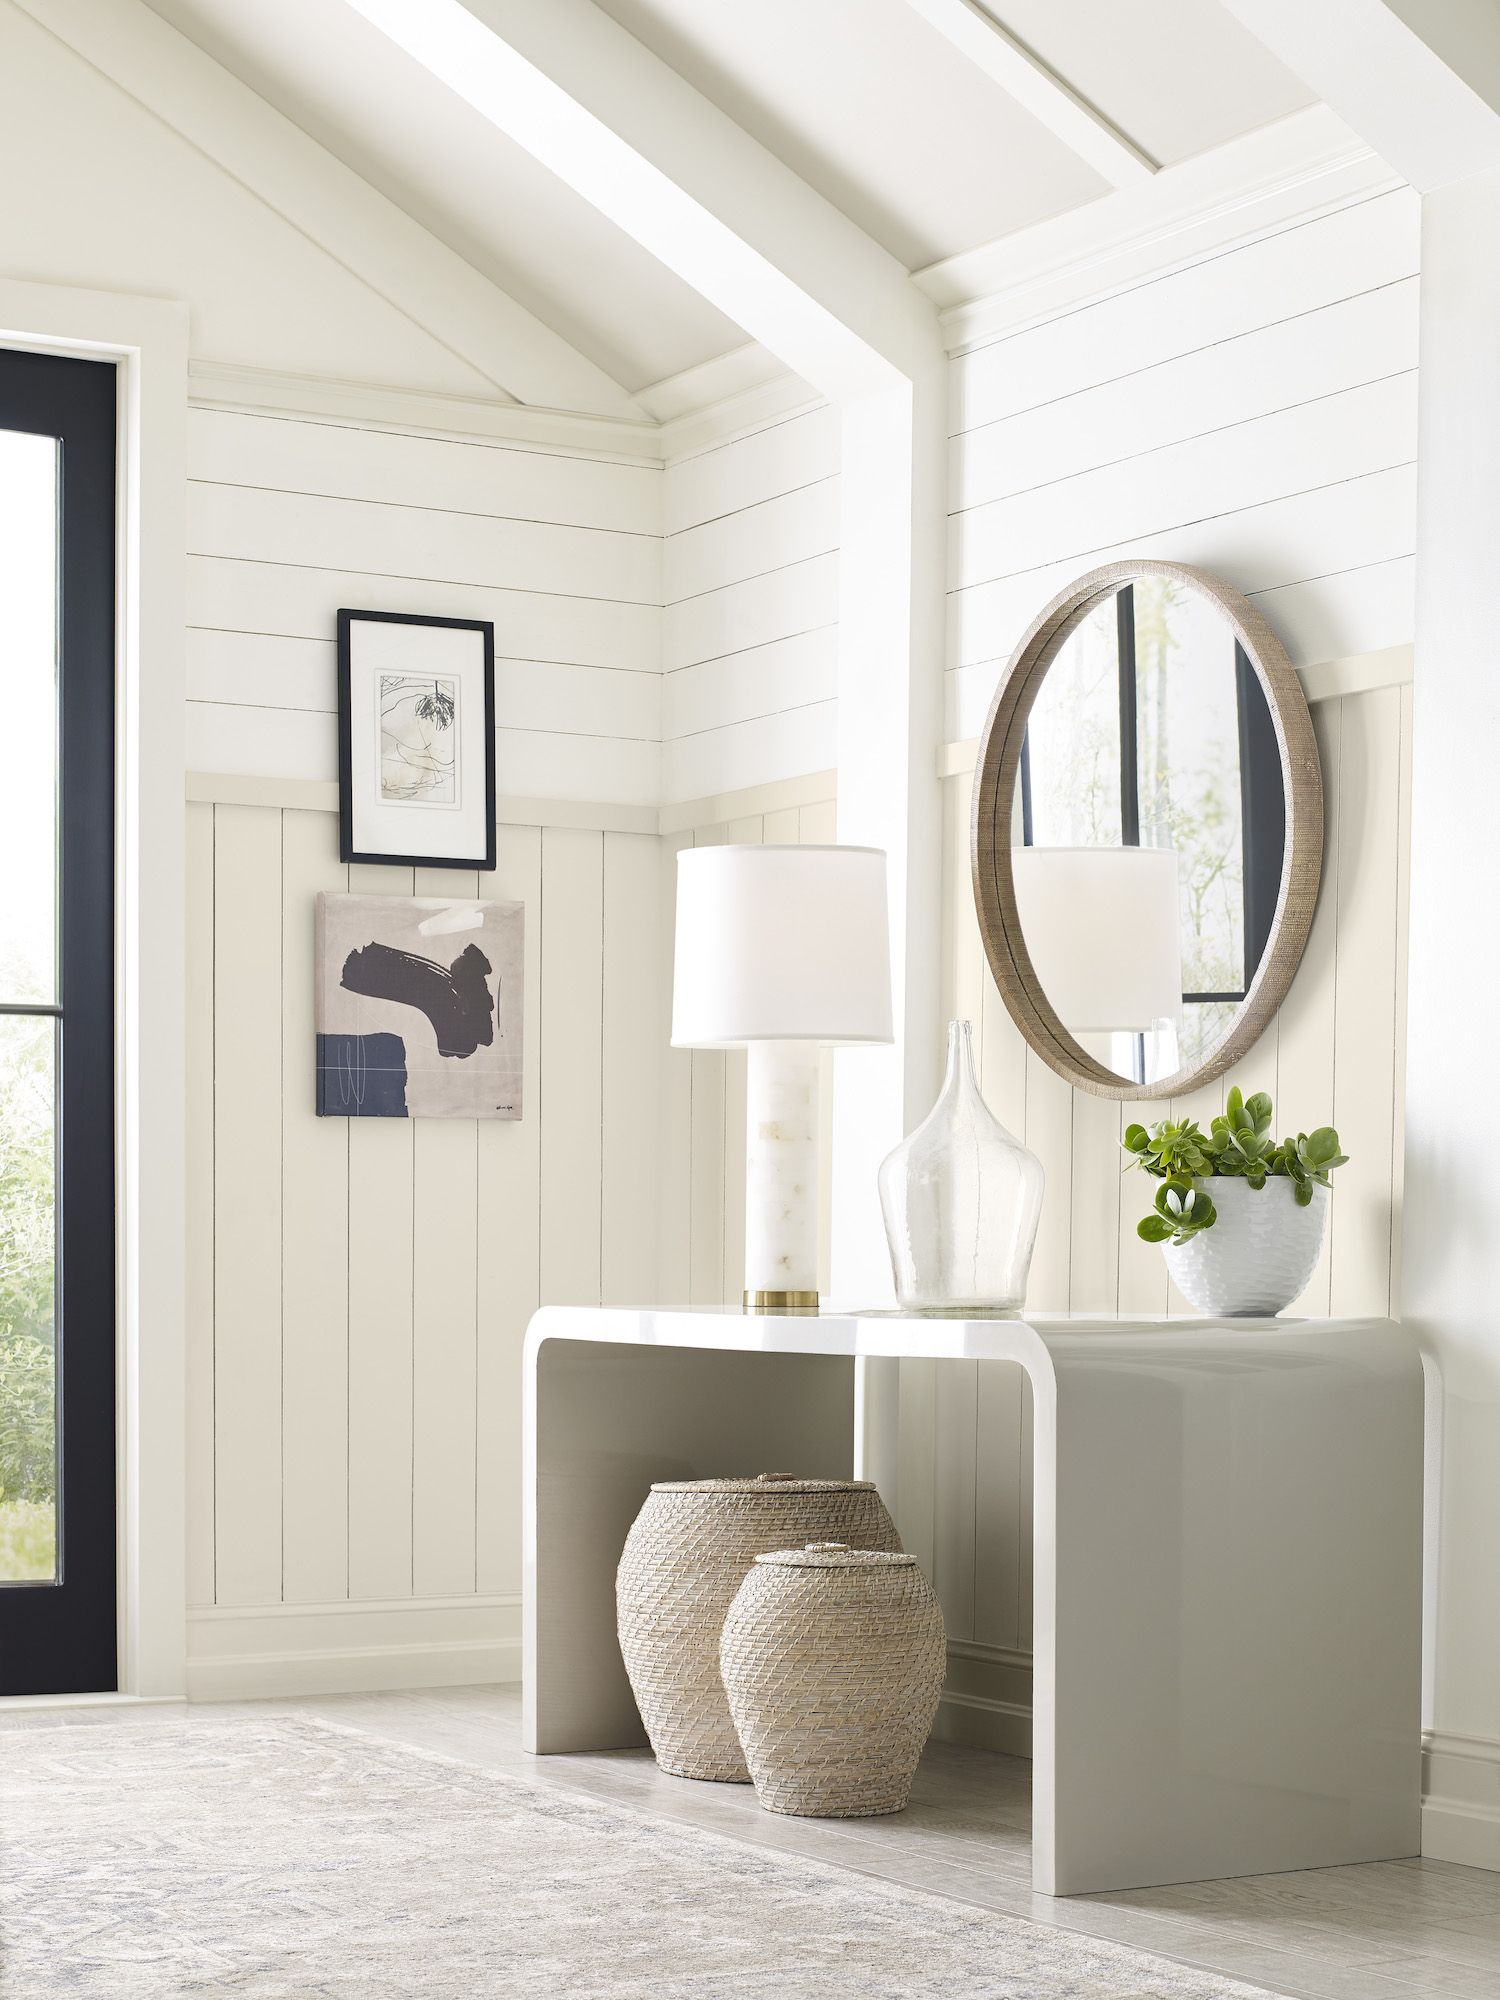 SherwinWilliams Predicts These Will Be the Top Paint